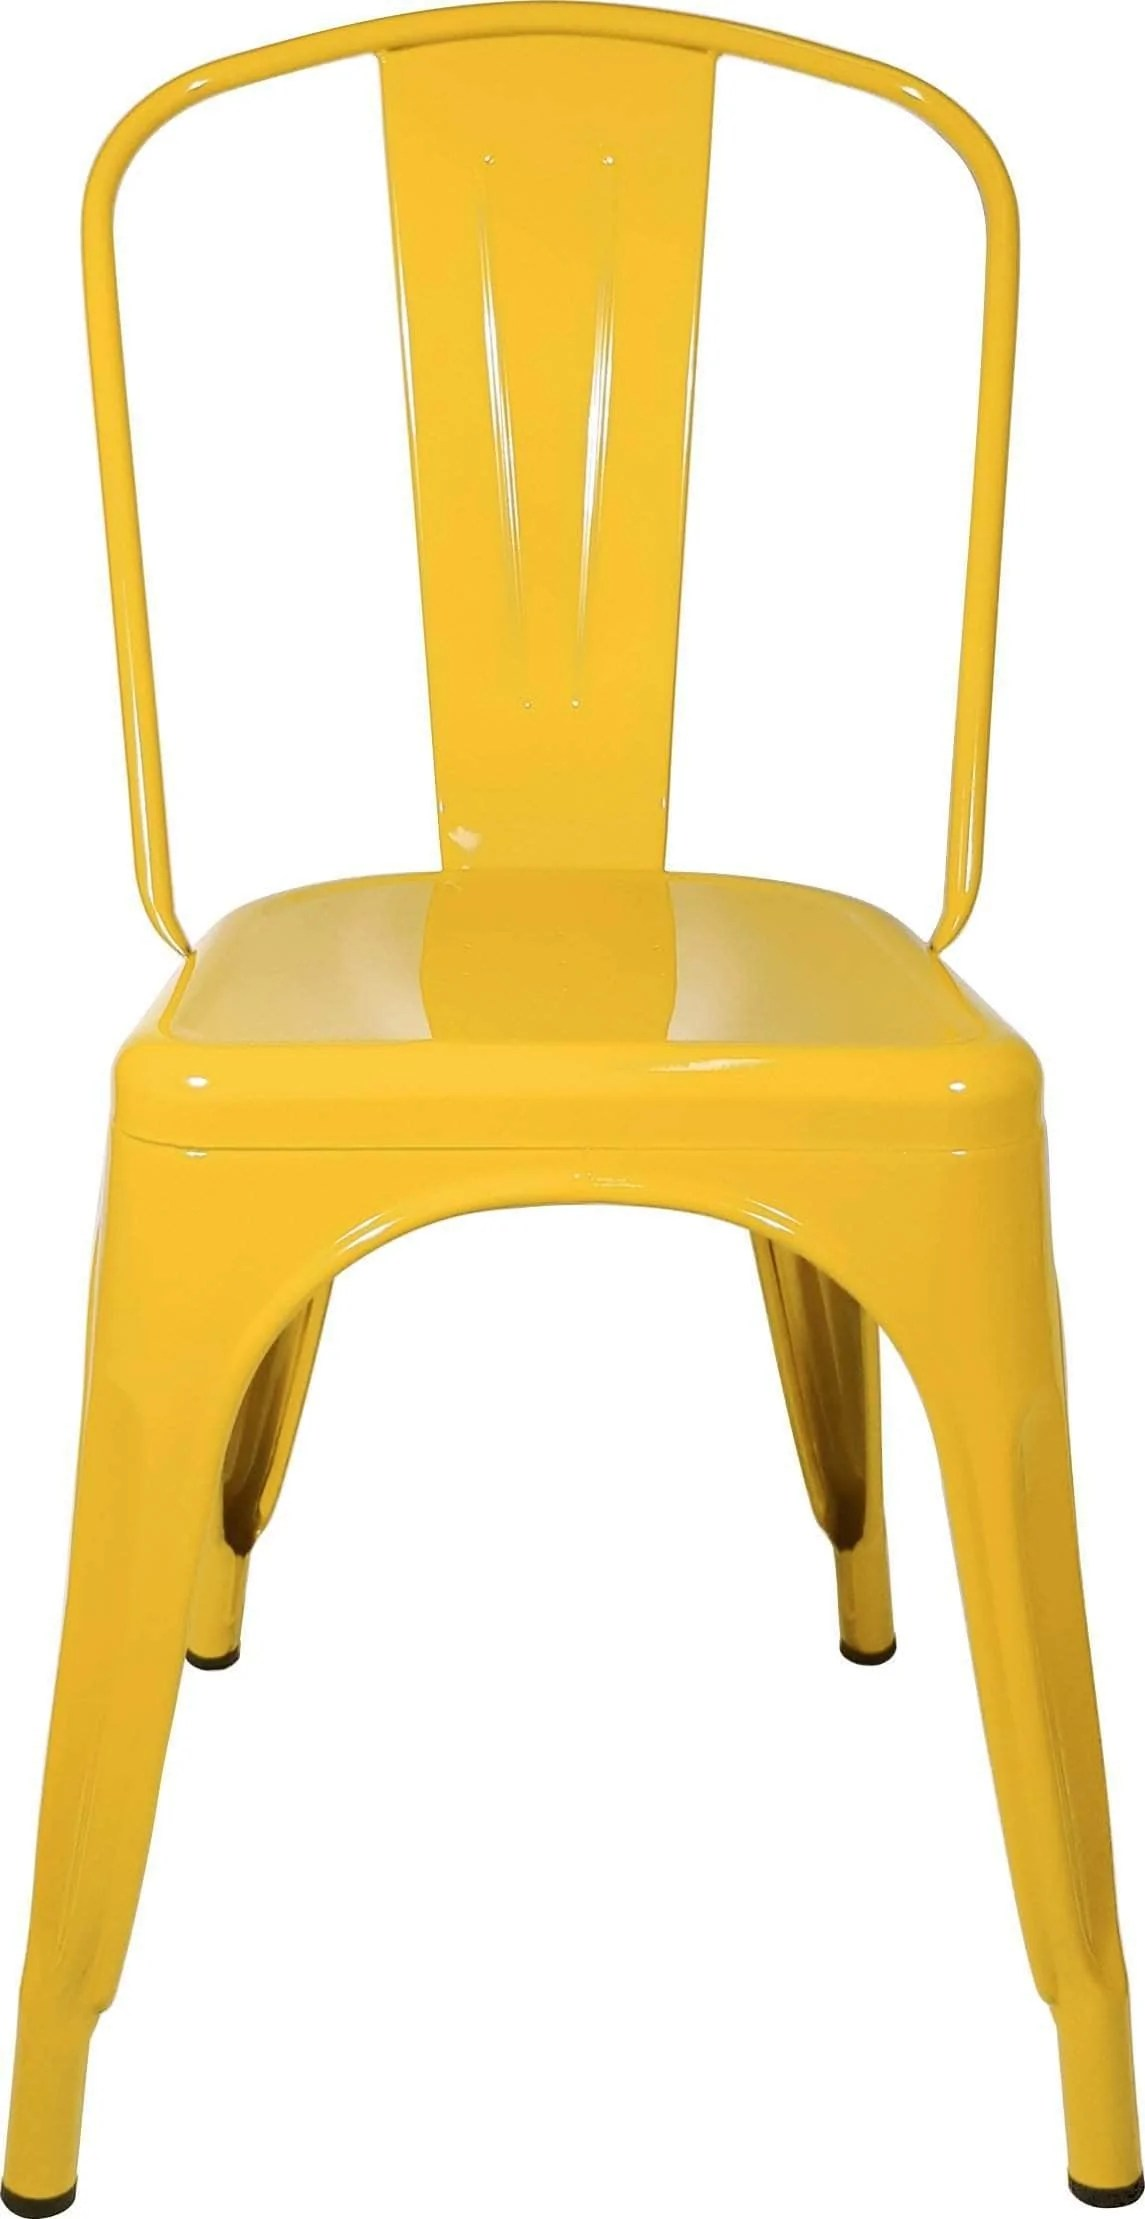 Egg Chair Perth Yellow Replica Tolix Cafe Chair High Back Buy Online